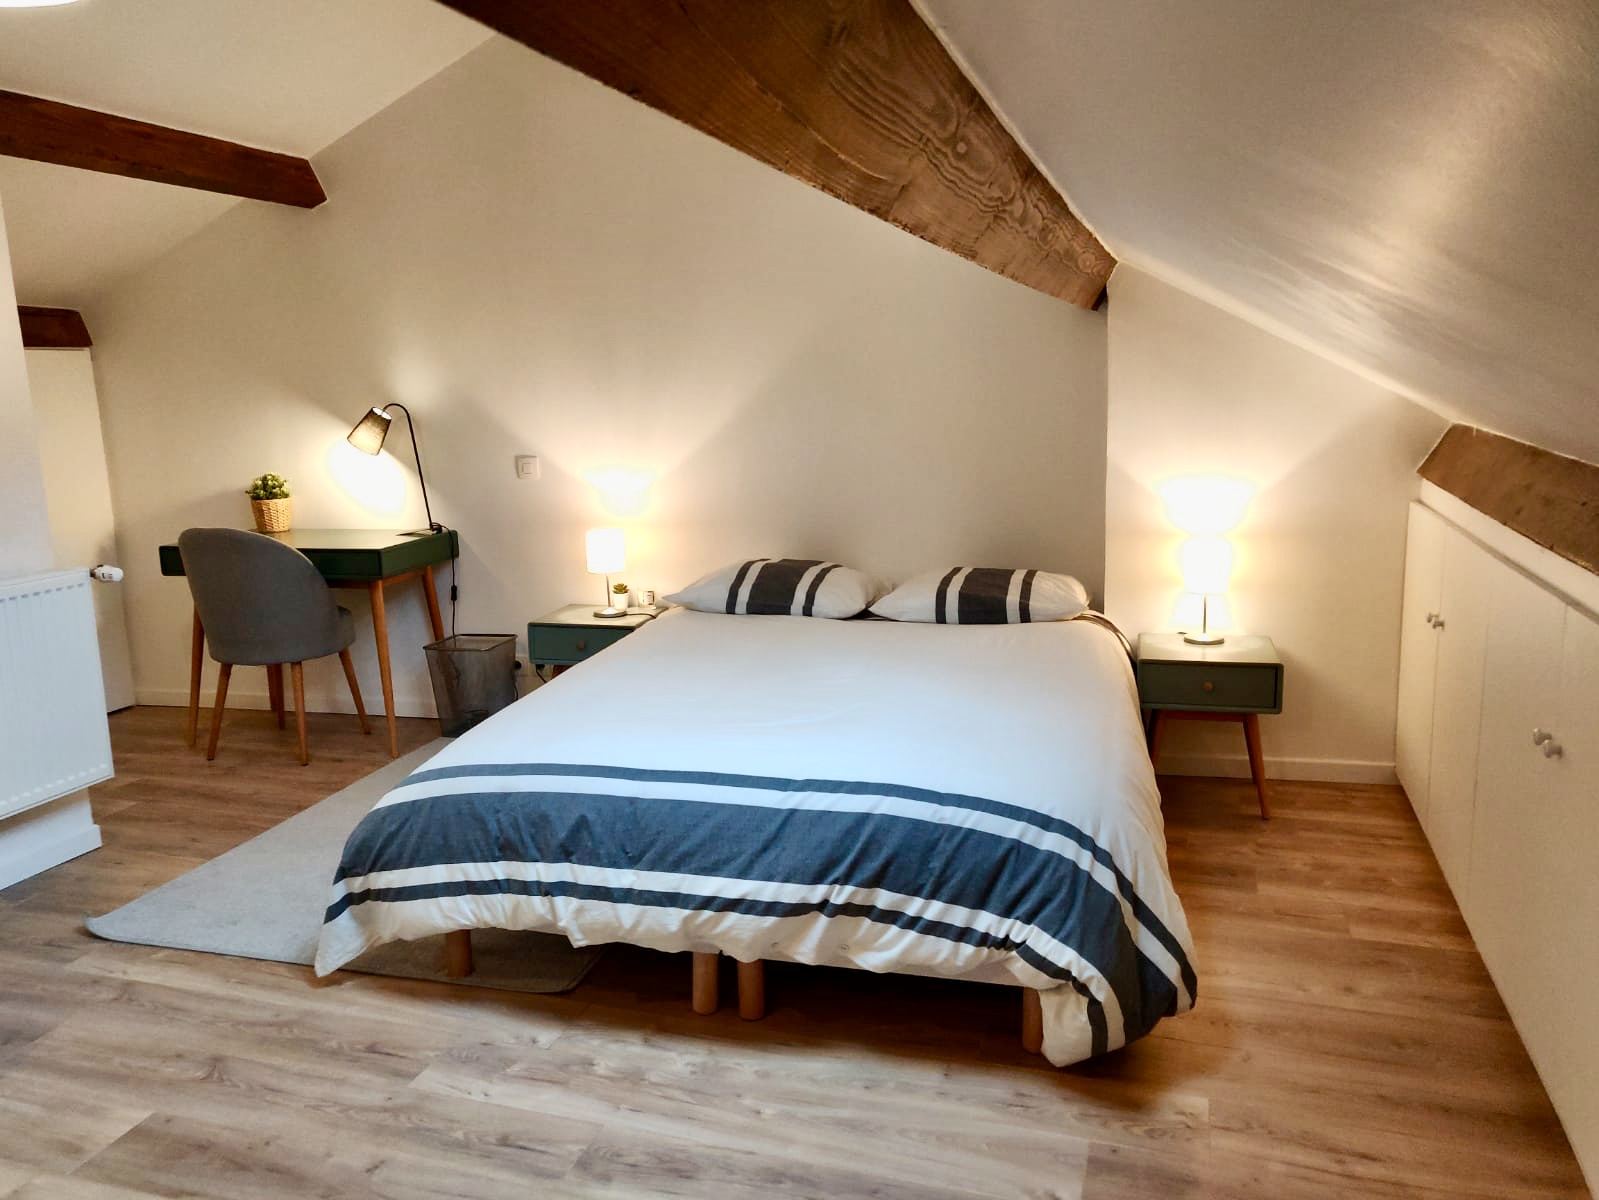 Insead MBA housing in Fontainebleau for students 2